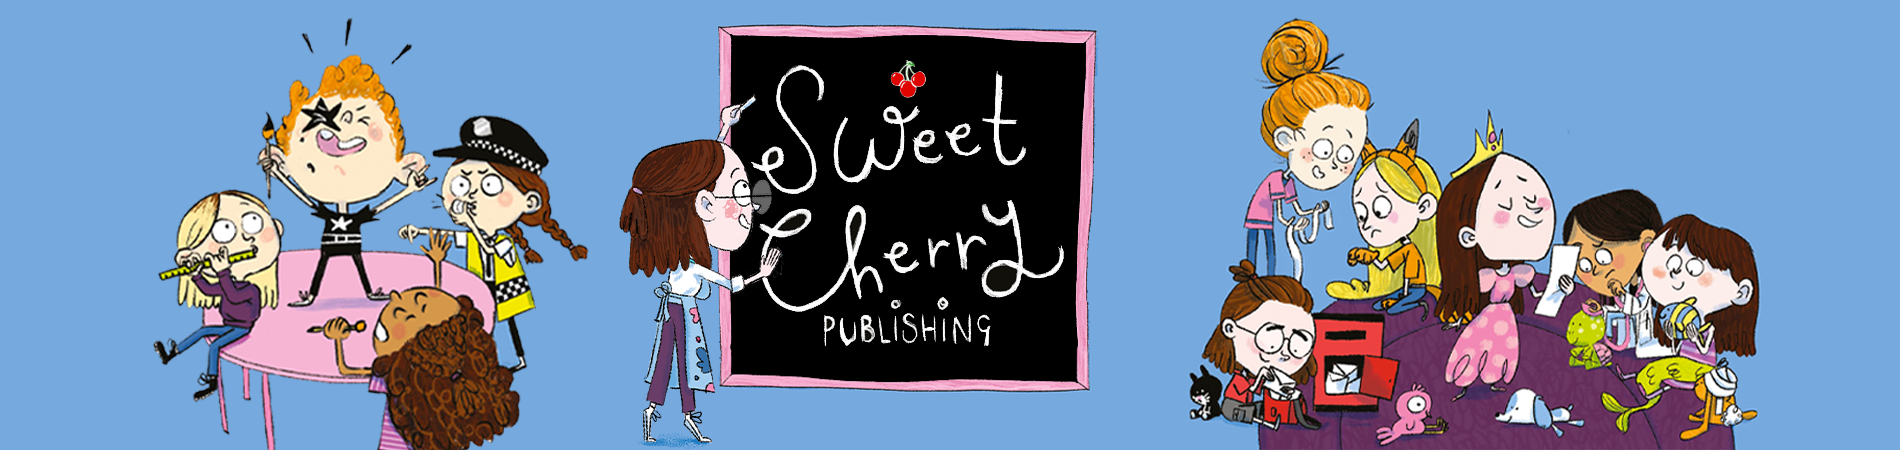 CASE: Sweet Cherry Publishing in China